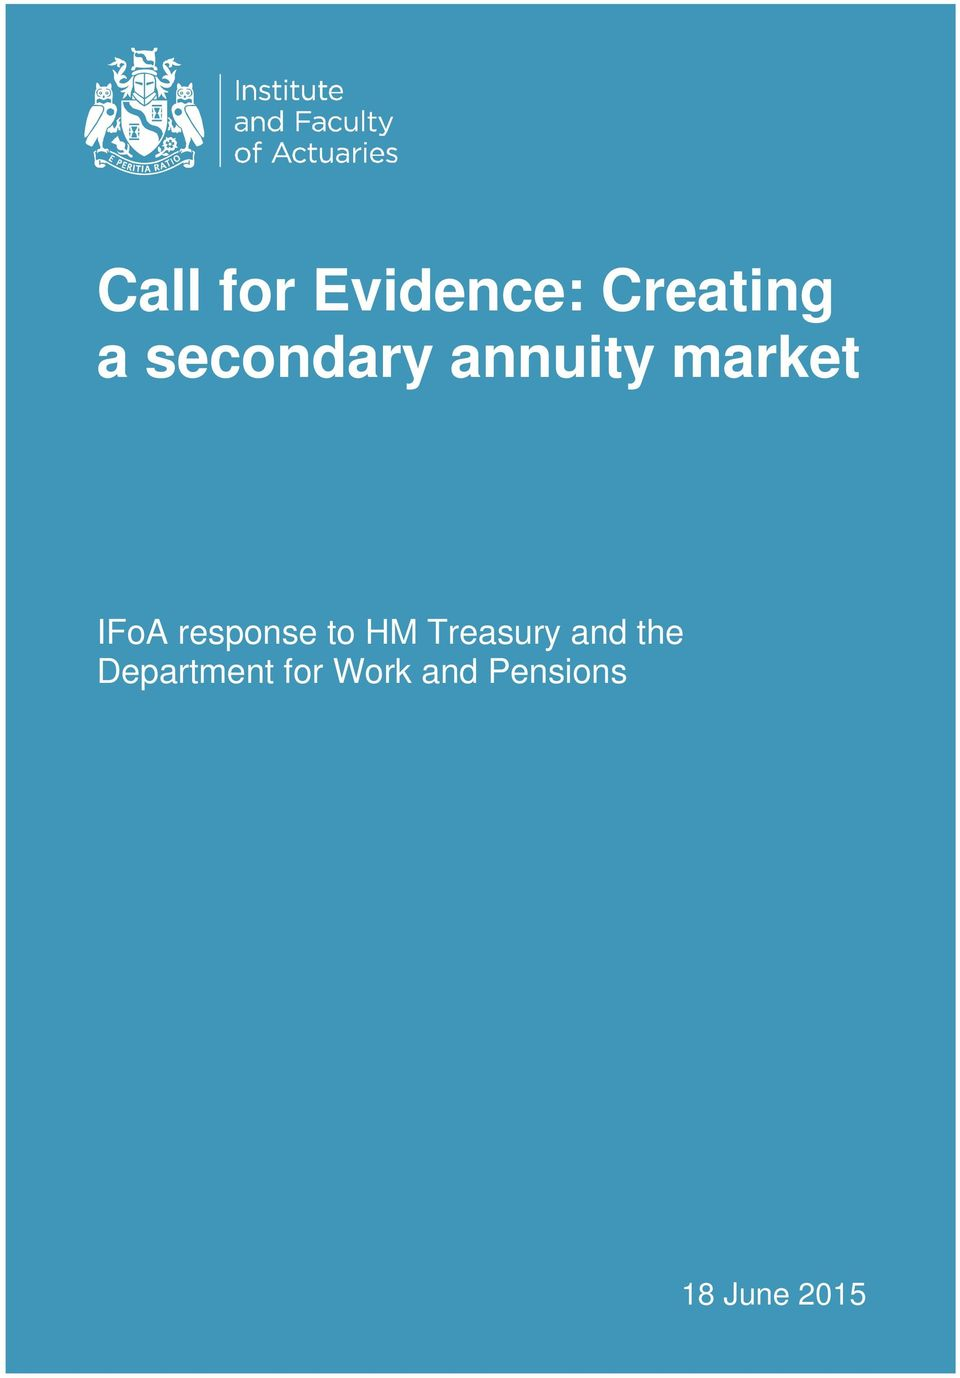 response to HM Treasury and the